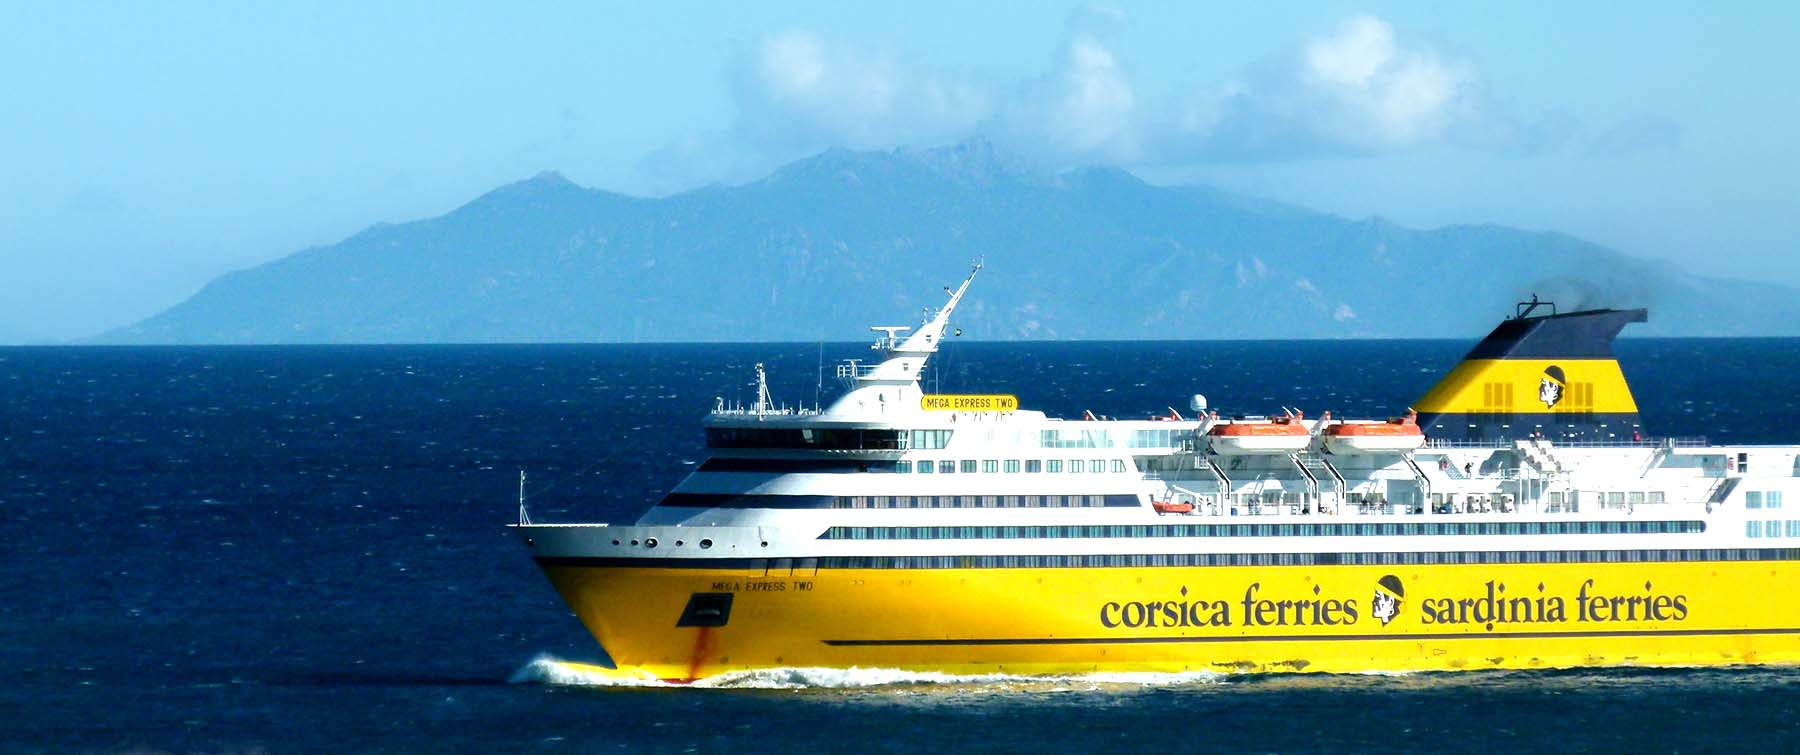 ferry crossing to elba corsica ferries. Black Bedroom Furniture Sets. Home Design Ideas